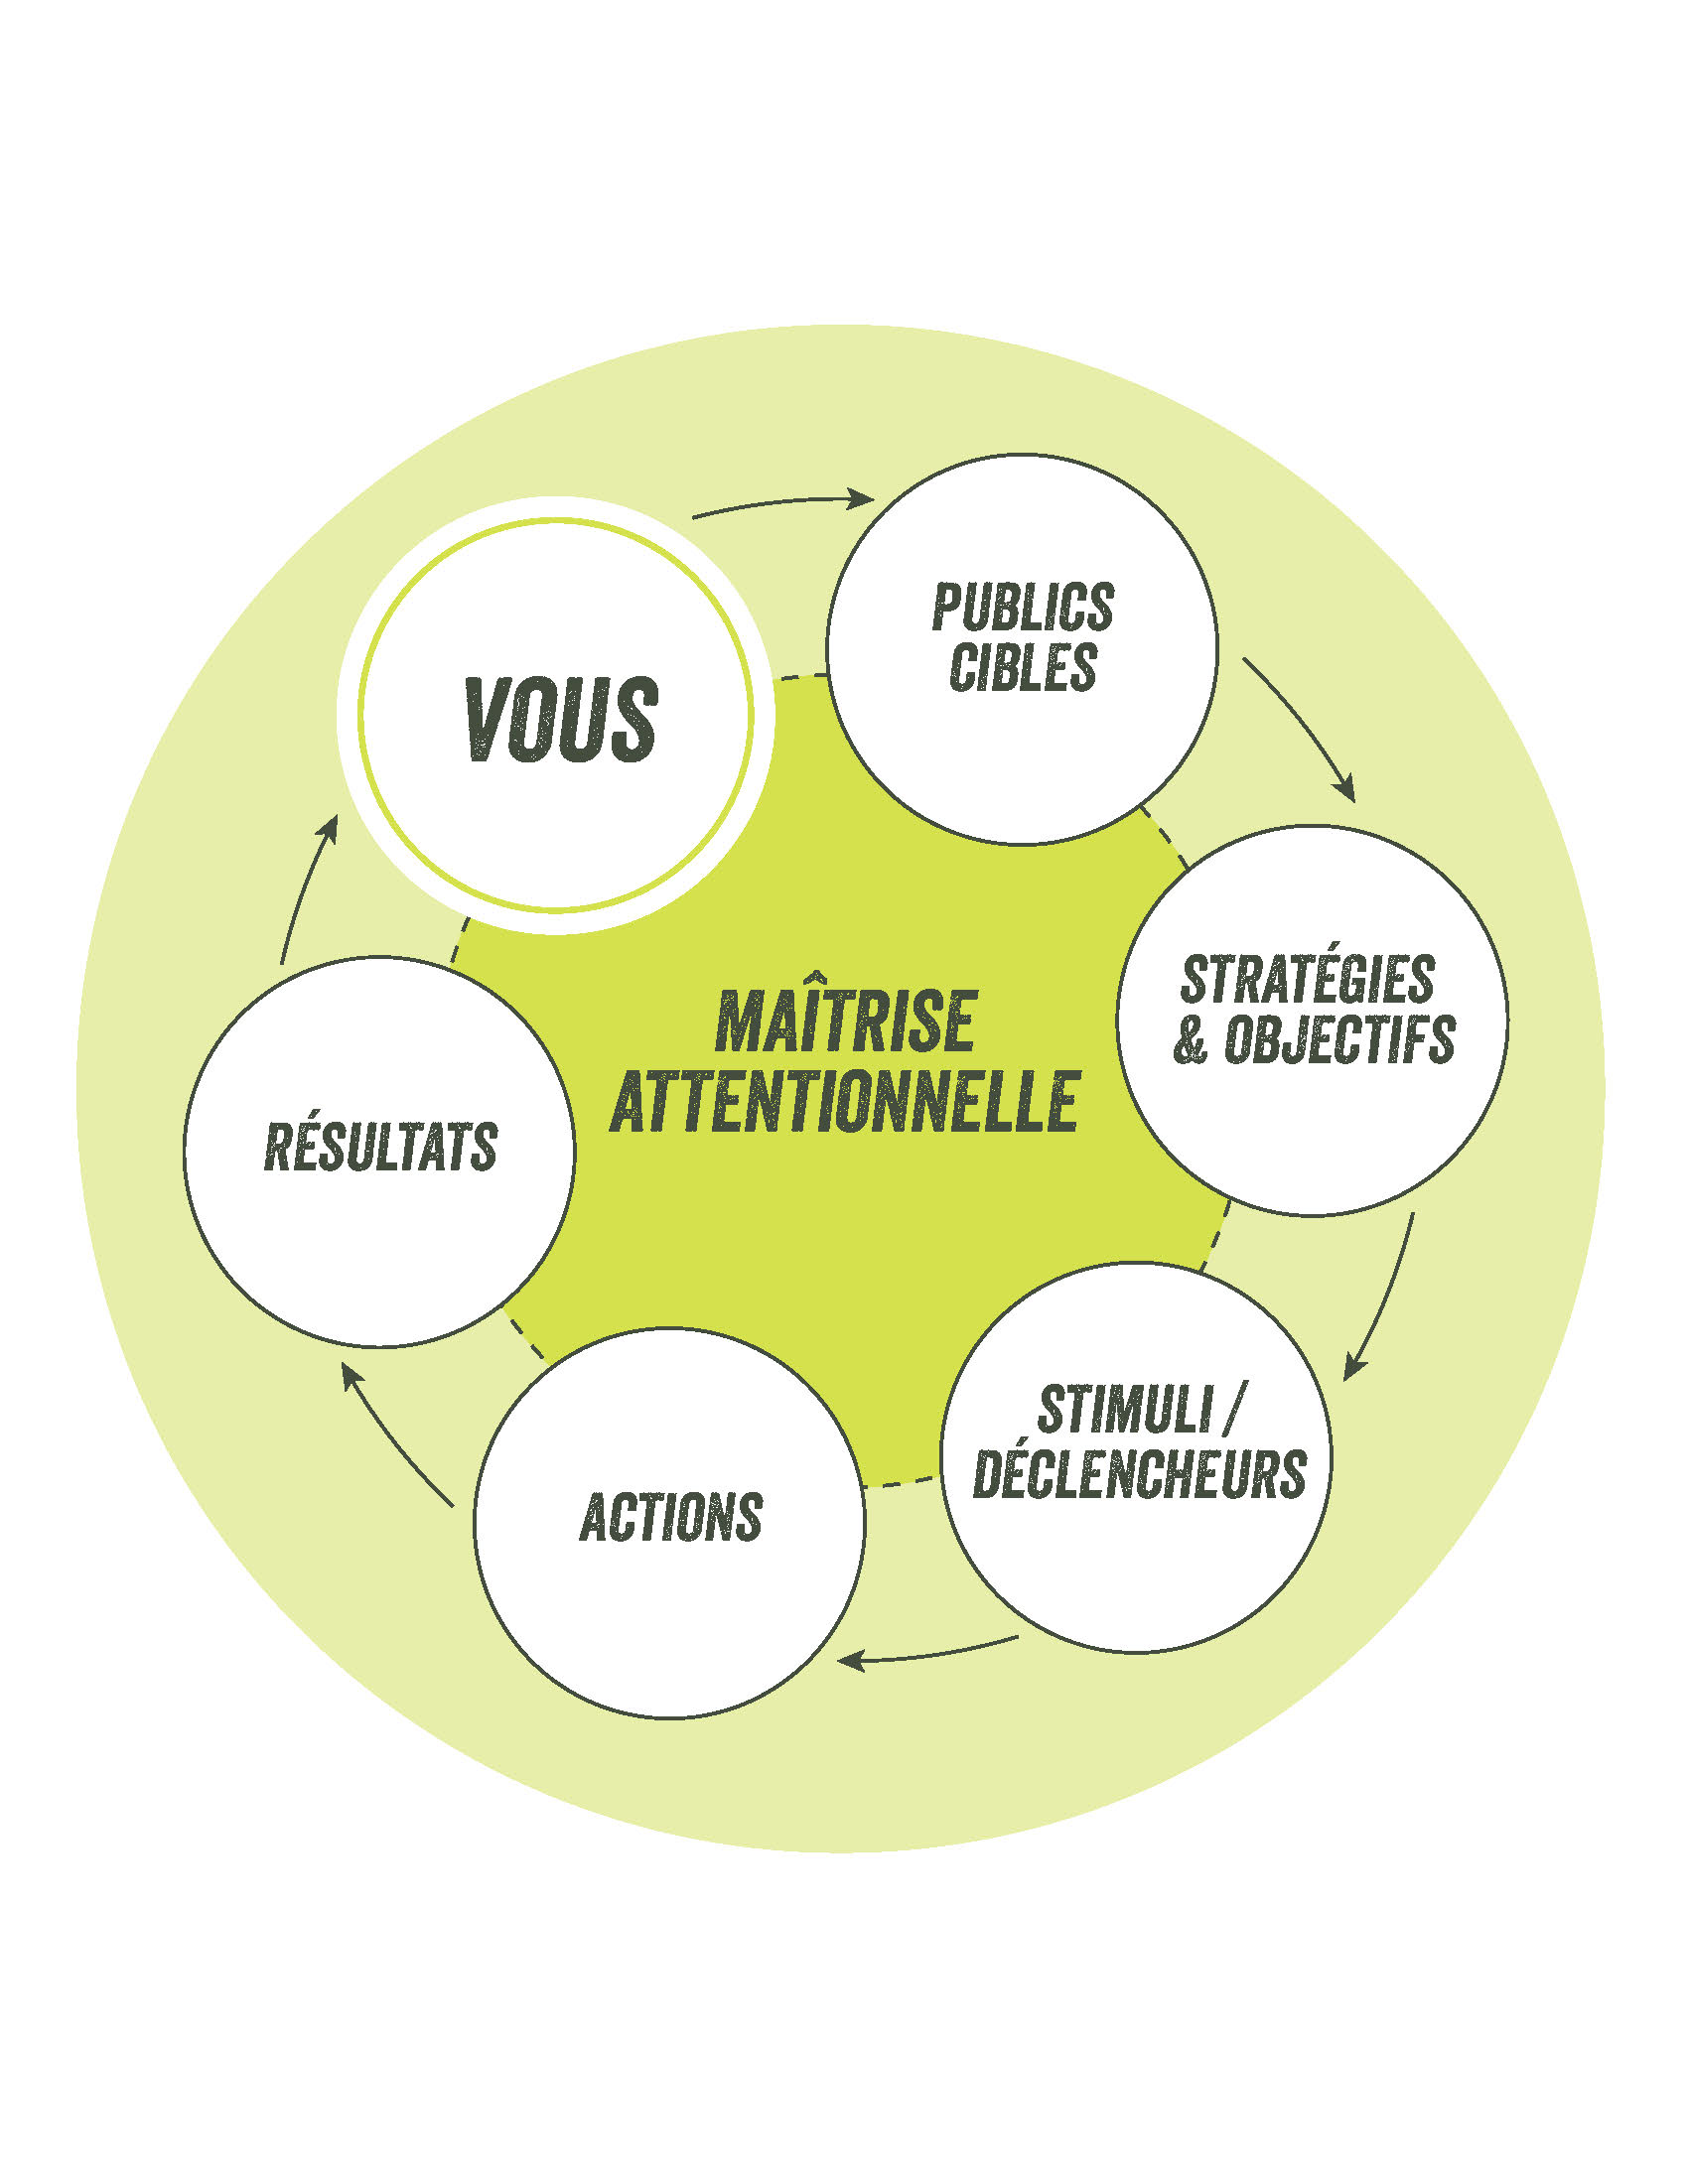 Cycle de la maîtrise attentionnelle développé par les stratèges d'ATTENTION design+